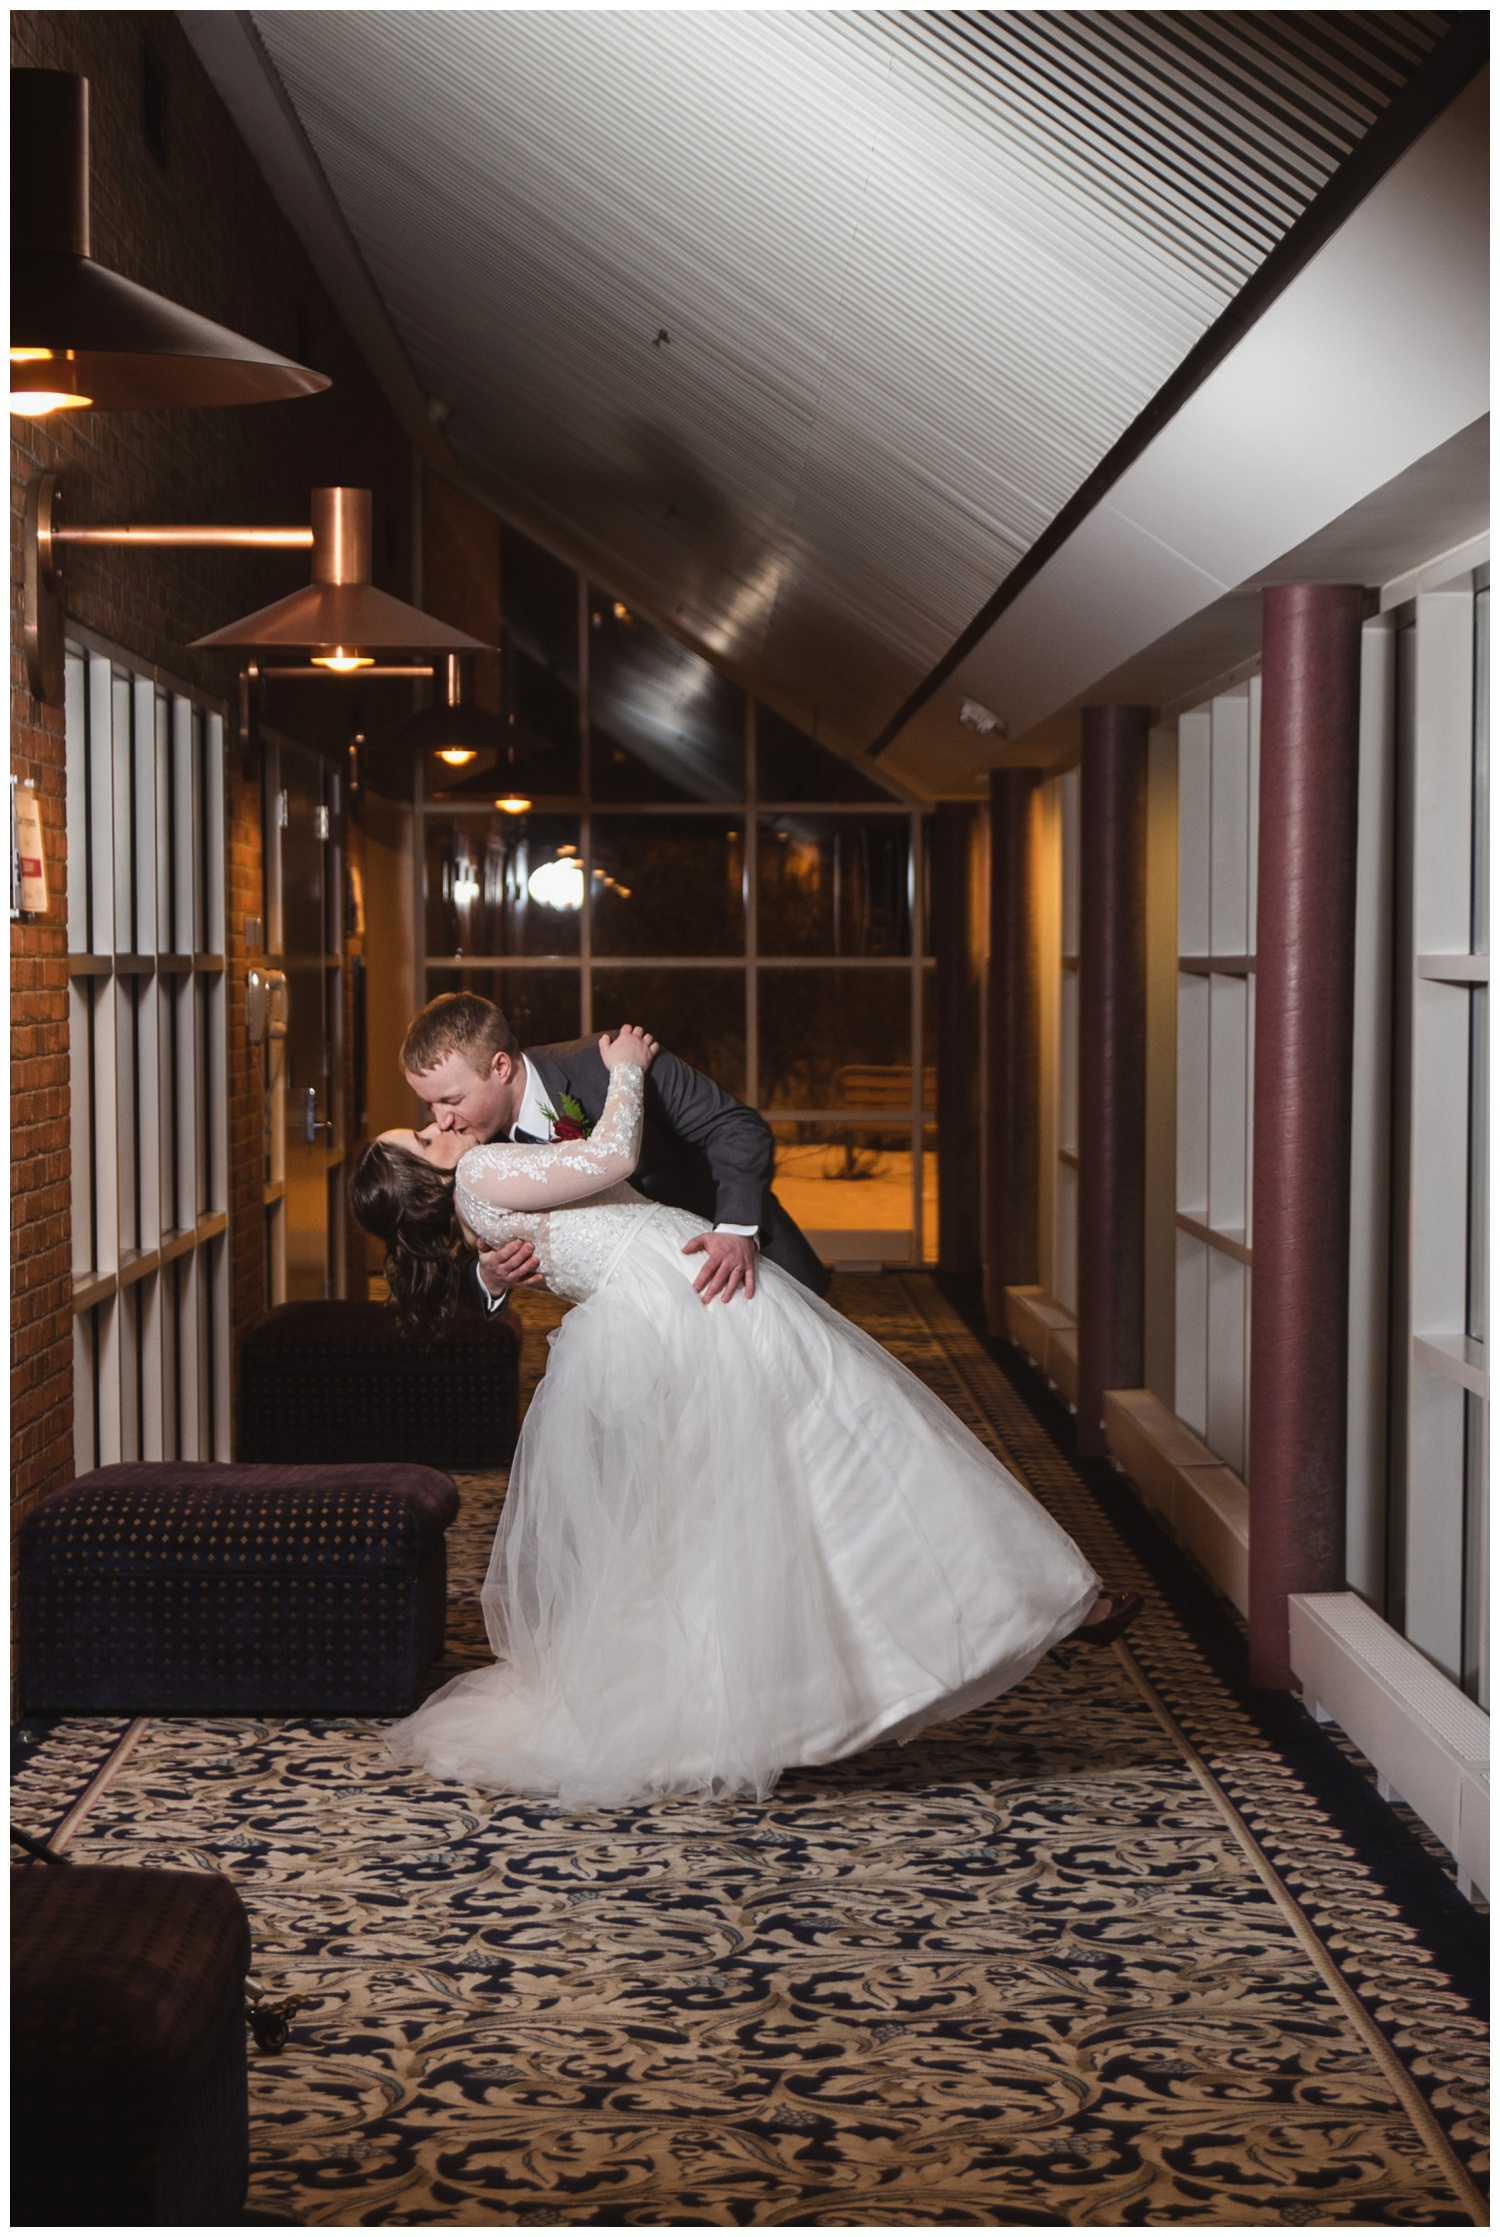 2019-01-10_0008.jpggianna's photography wedding medina minnesota engagement photographer crowne plaza